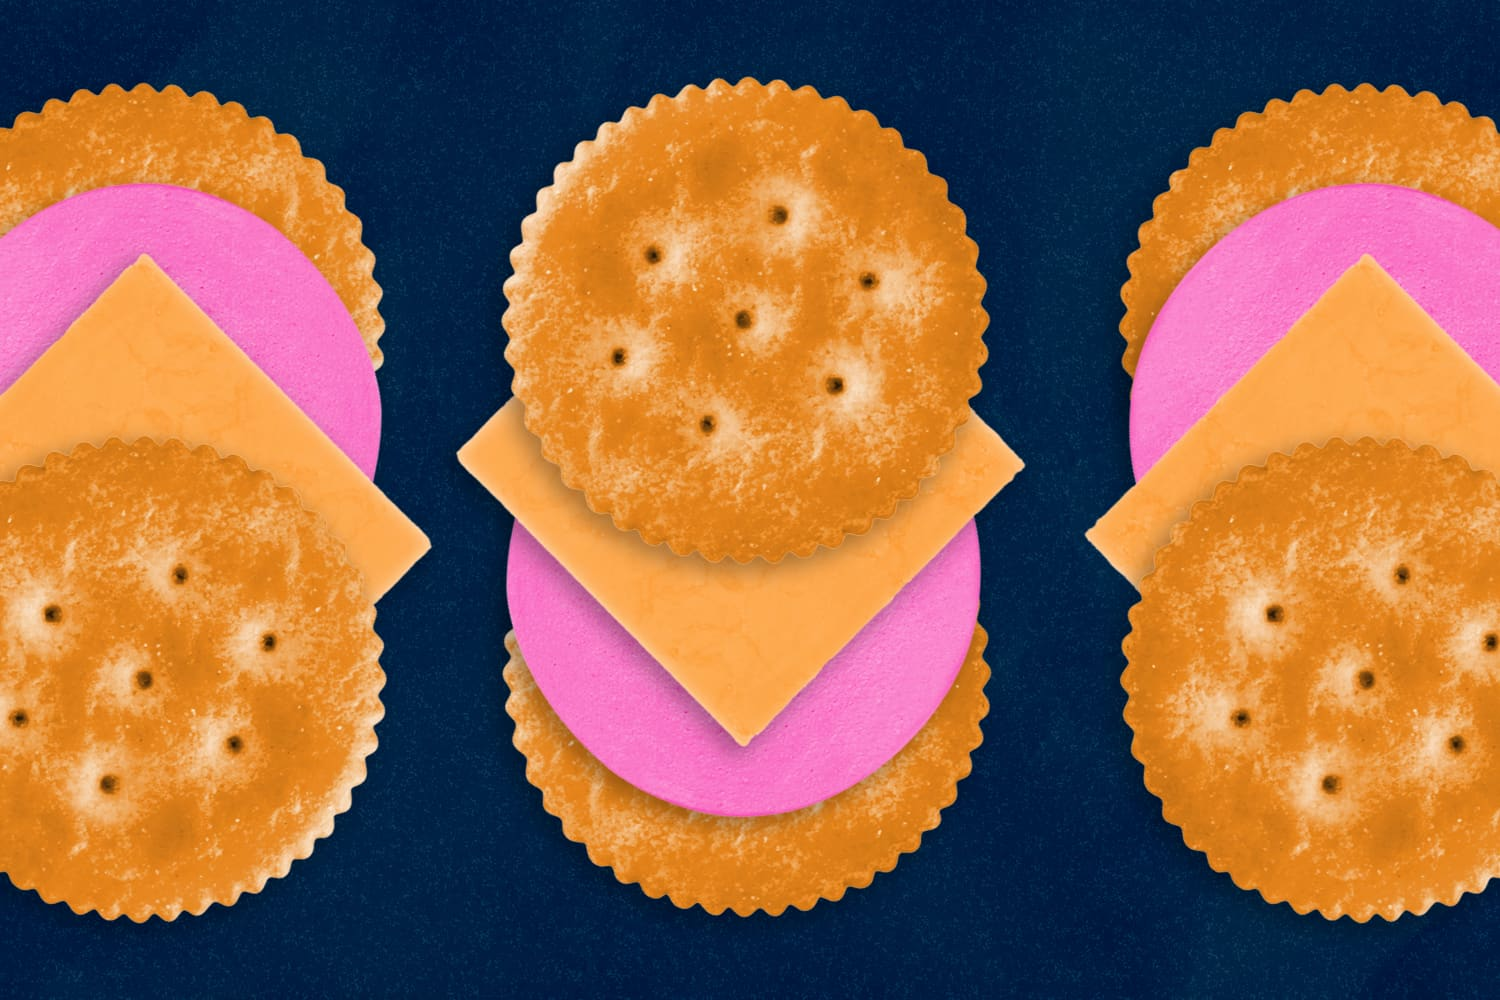 The Lunchables Generation Grows Up